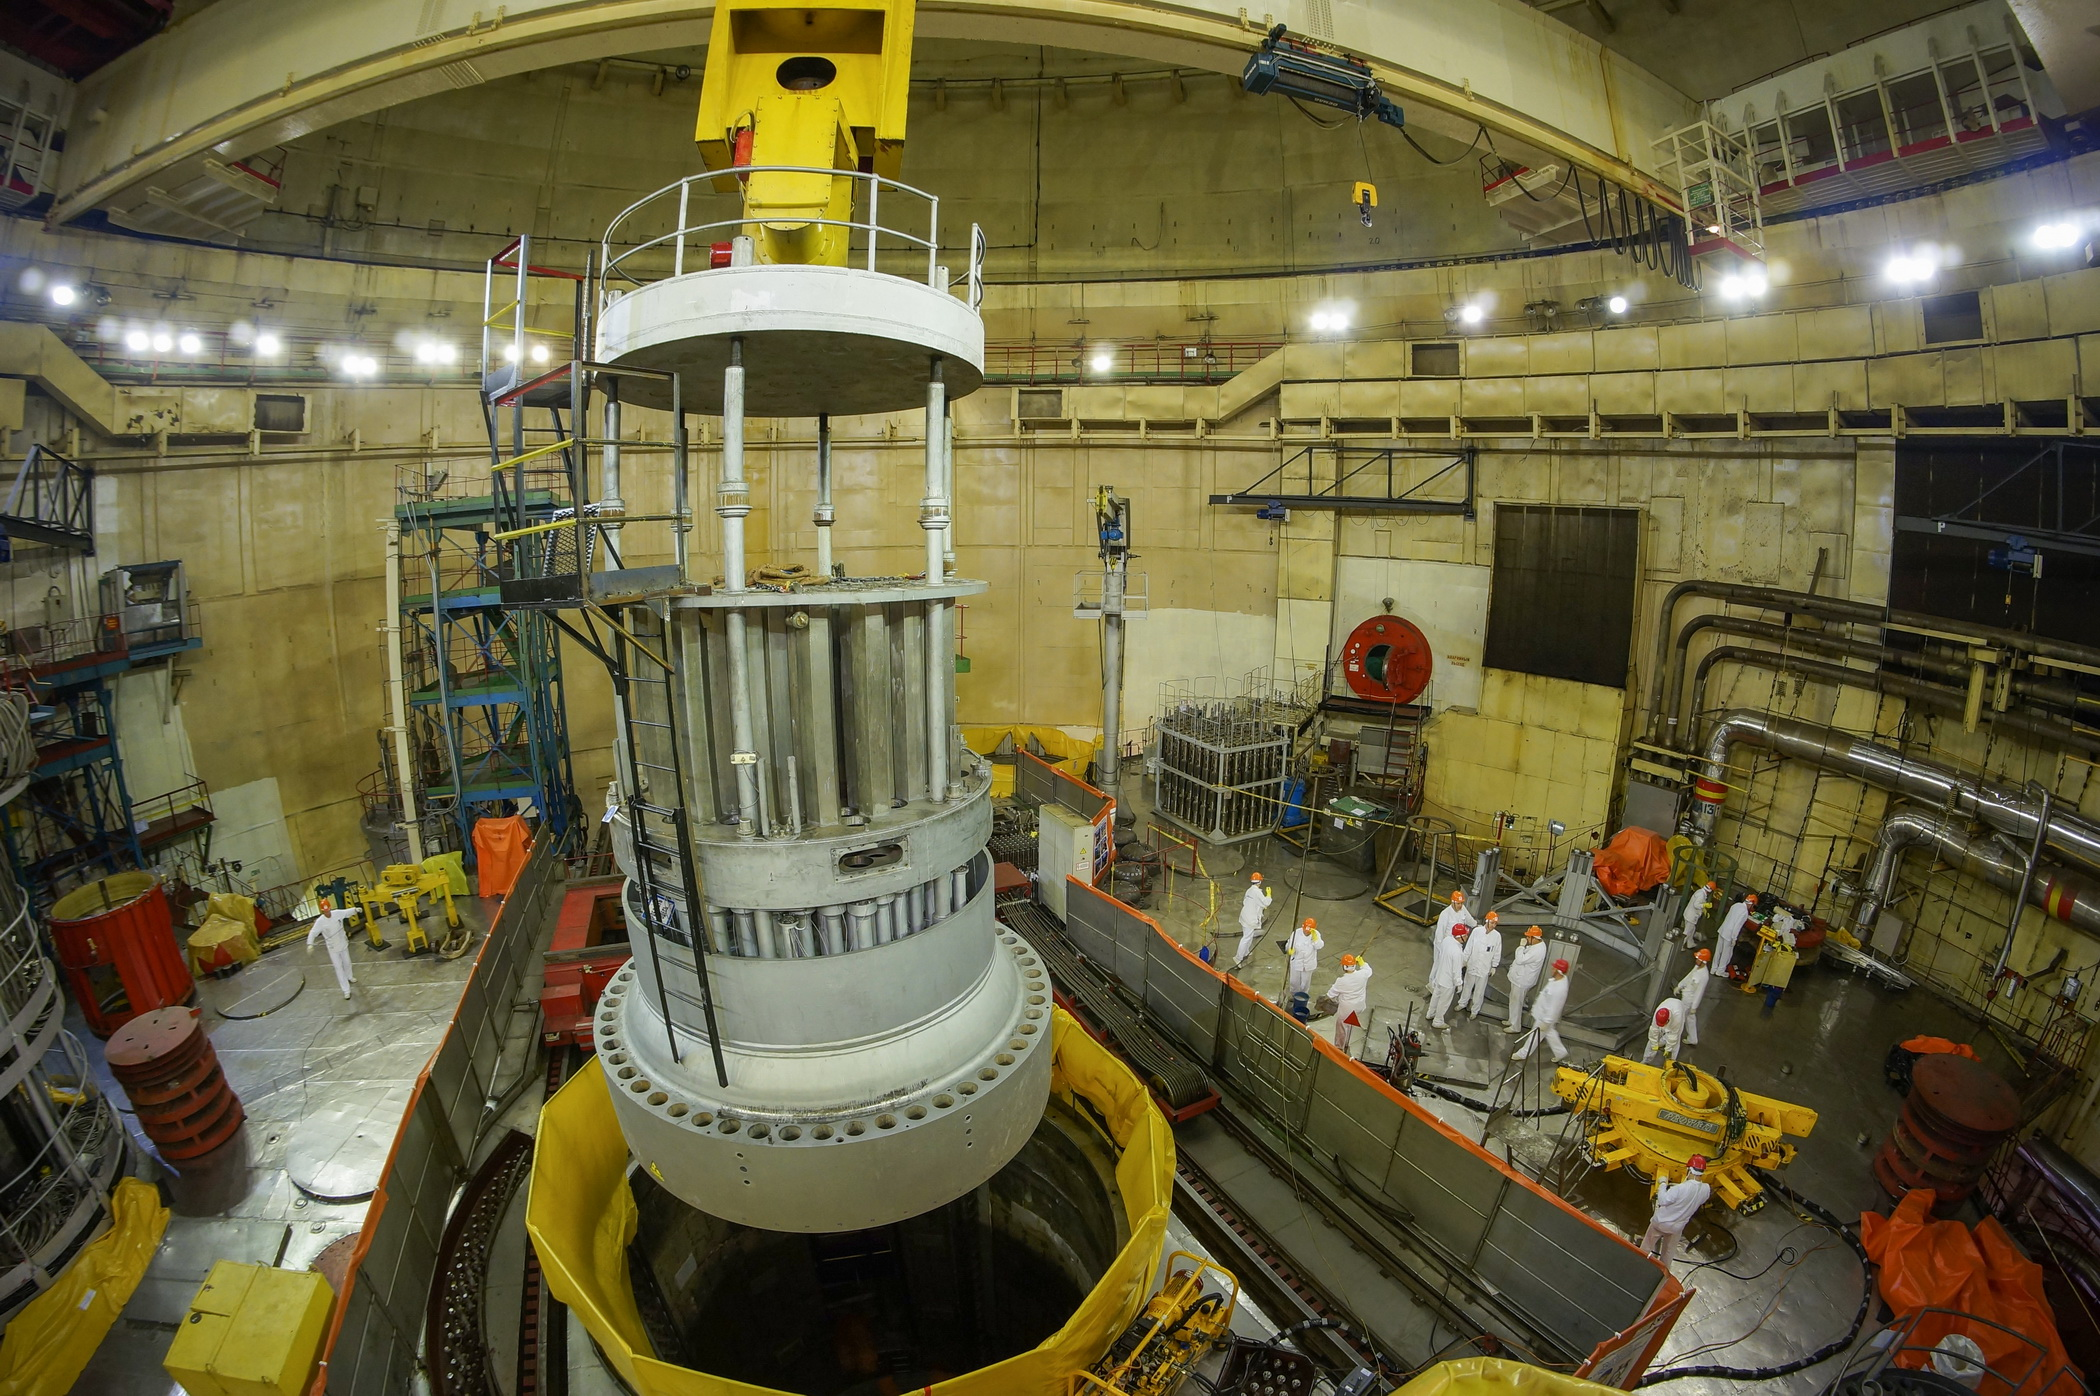 A new reactor vessel inspection technology has been used for the first time in Russia at Unit 1 of the Kalinin NPP